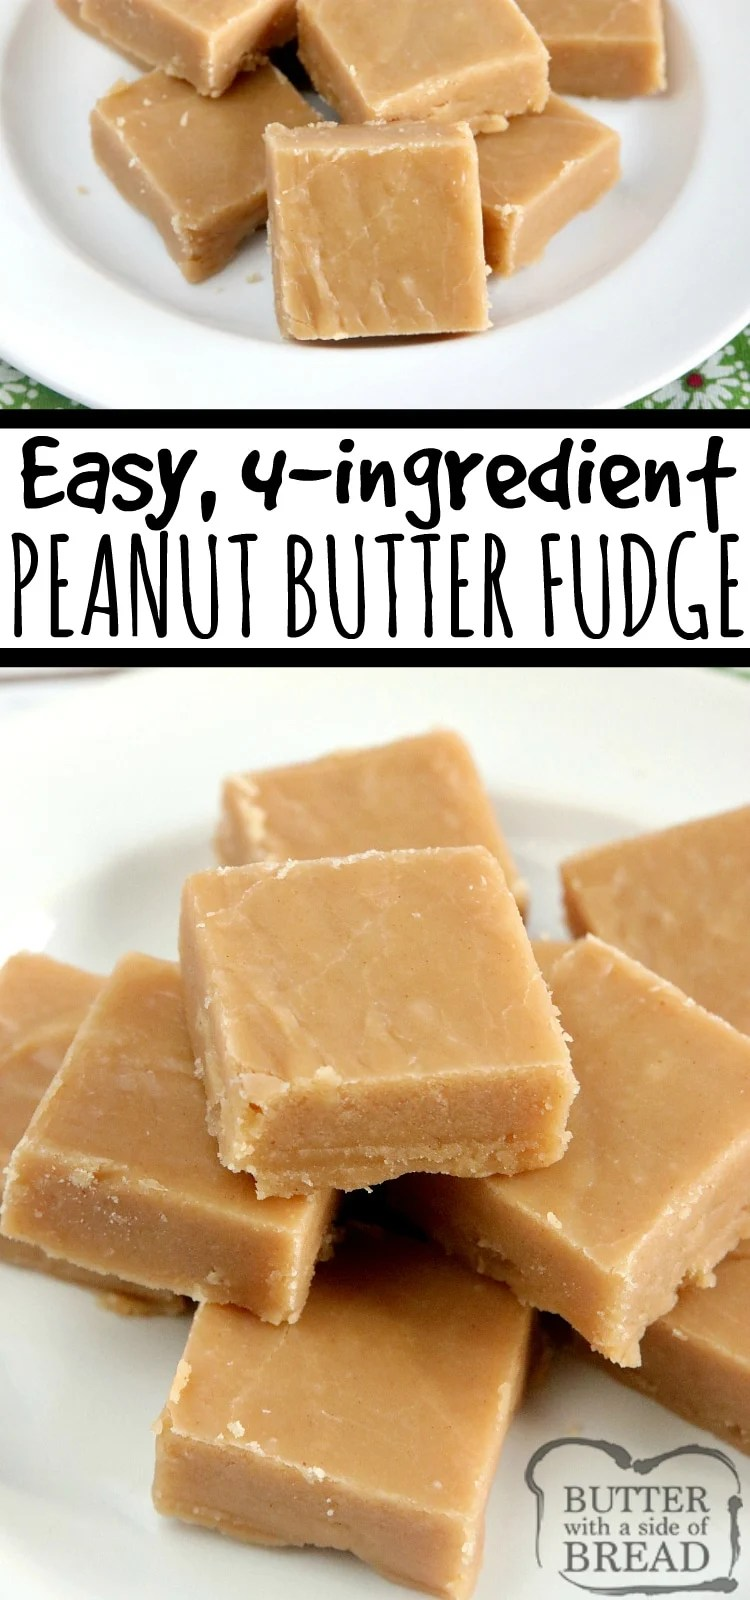 Easy Peanut Butter Fudge is made with only 4 ingredients, no candy thermometer needed! This easy fudge recipe is made with peanut butter, sugar, milk and vanilla extract- that's it!